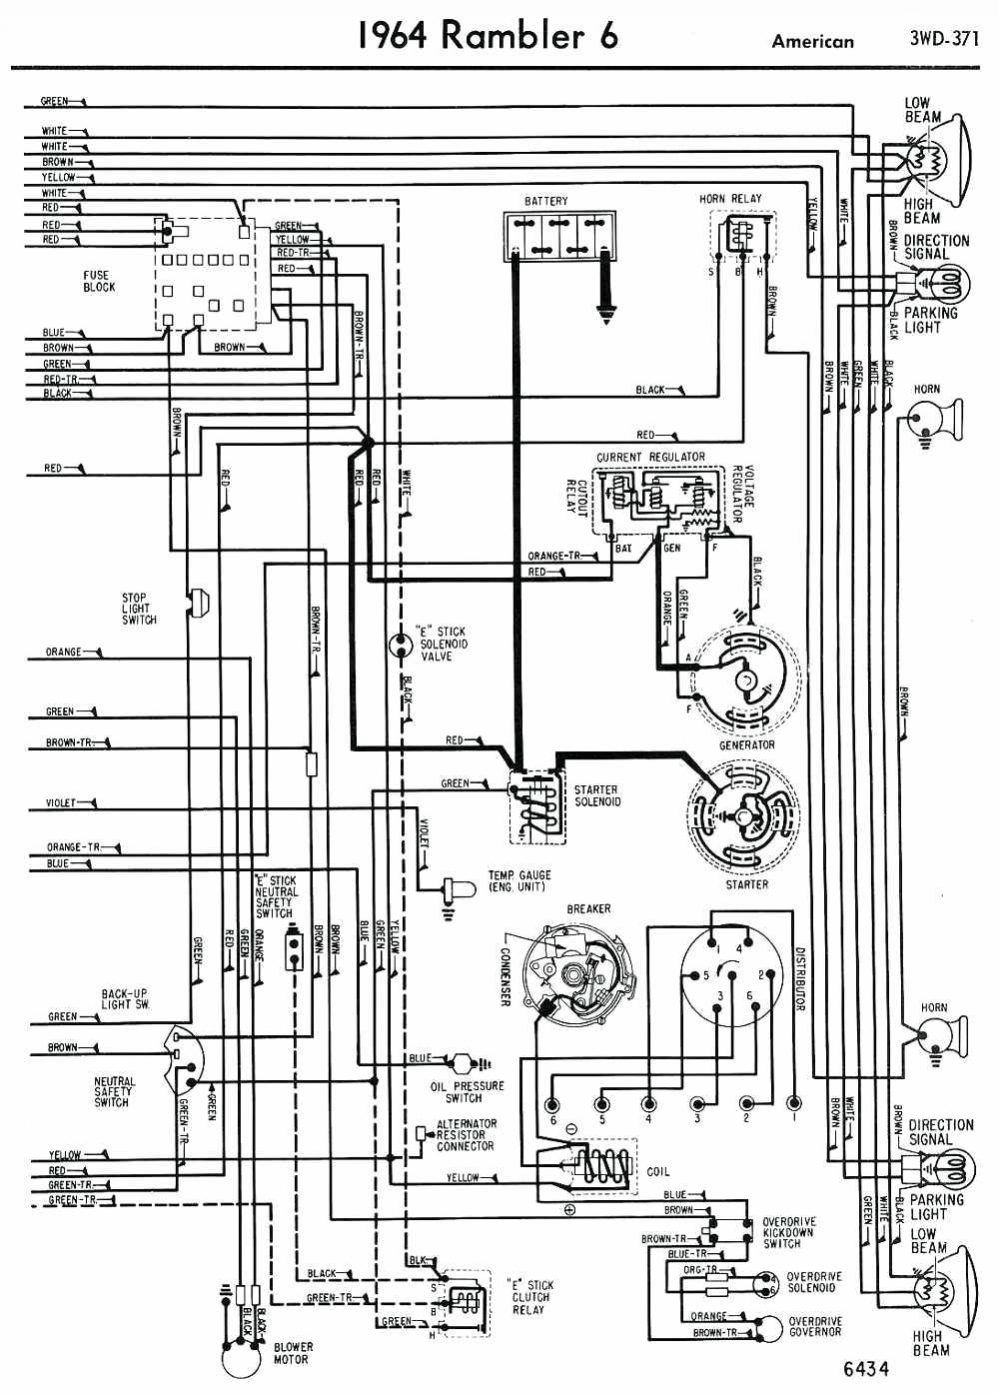 white rodgers 24a01g 3 wiring diagram